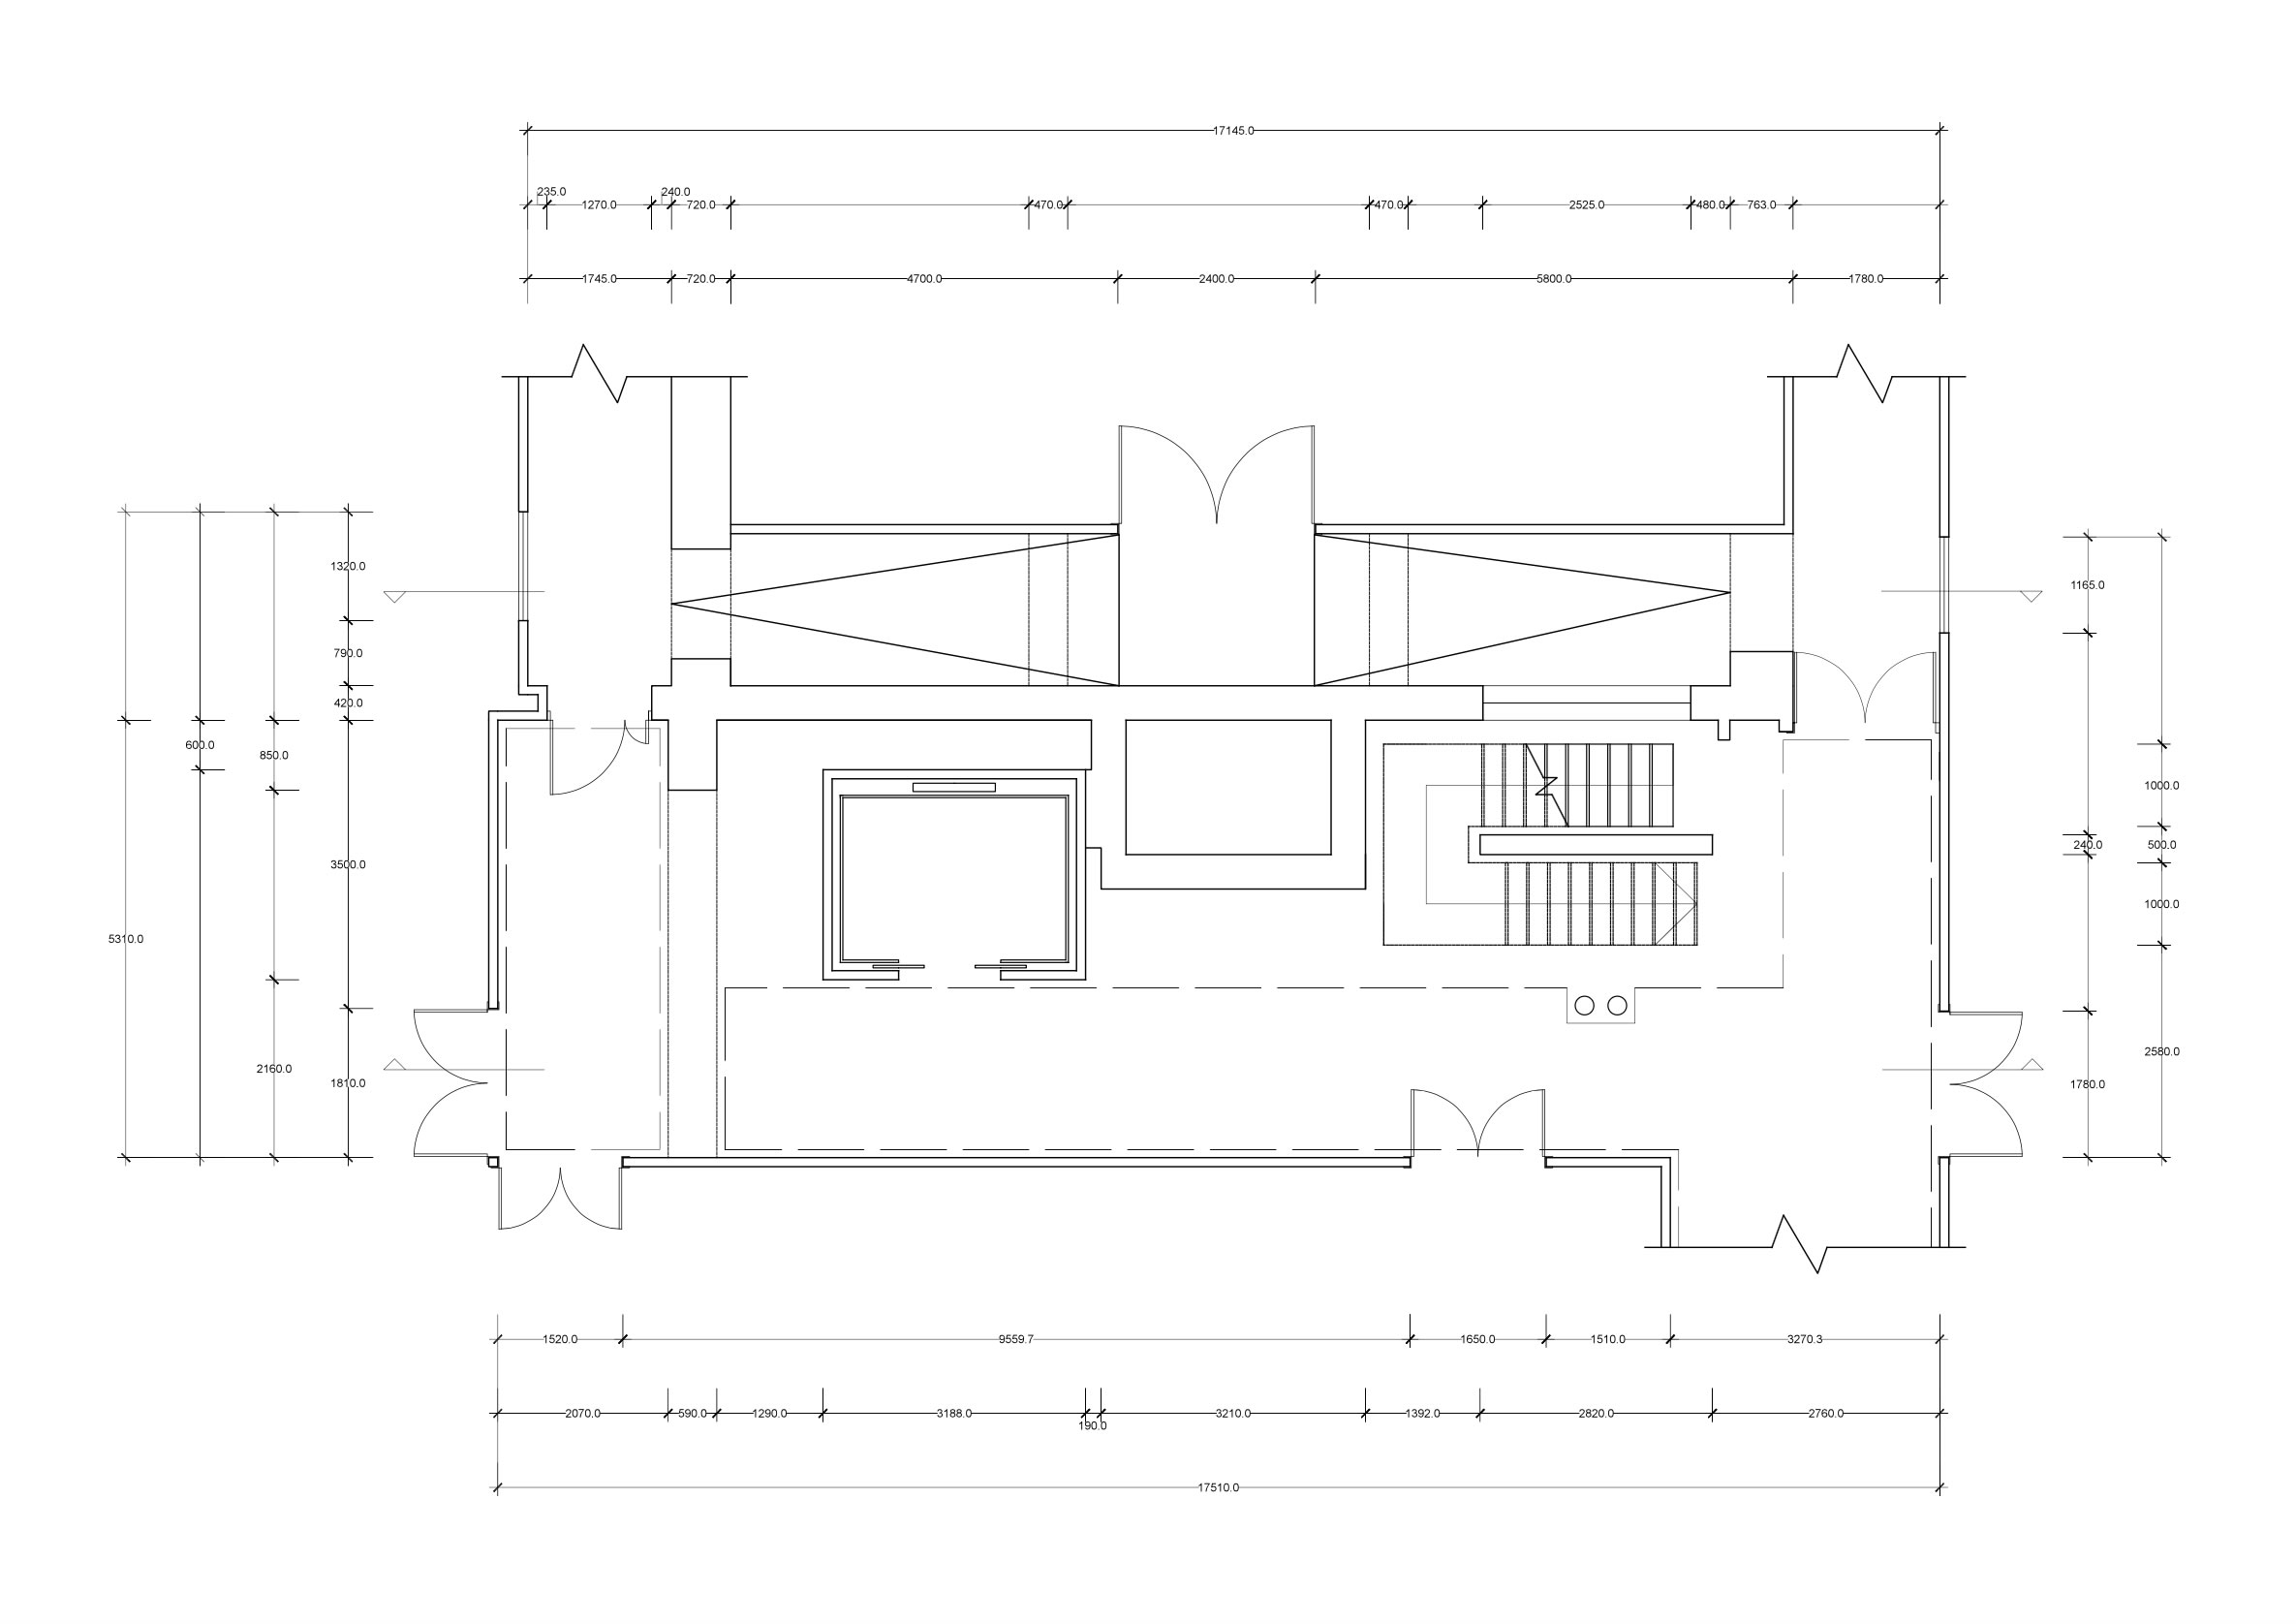 Technical Drawing by hand of a Plan.